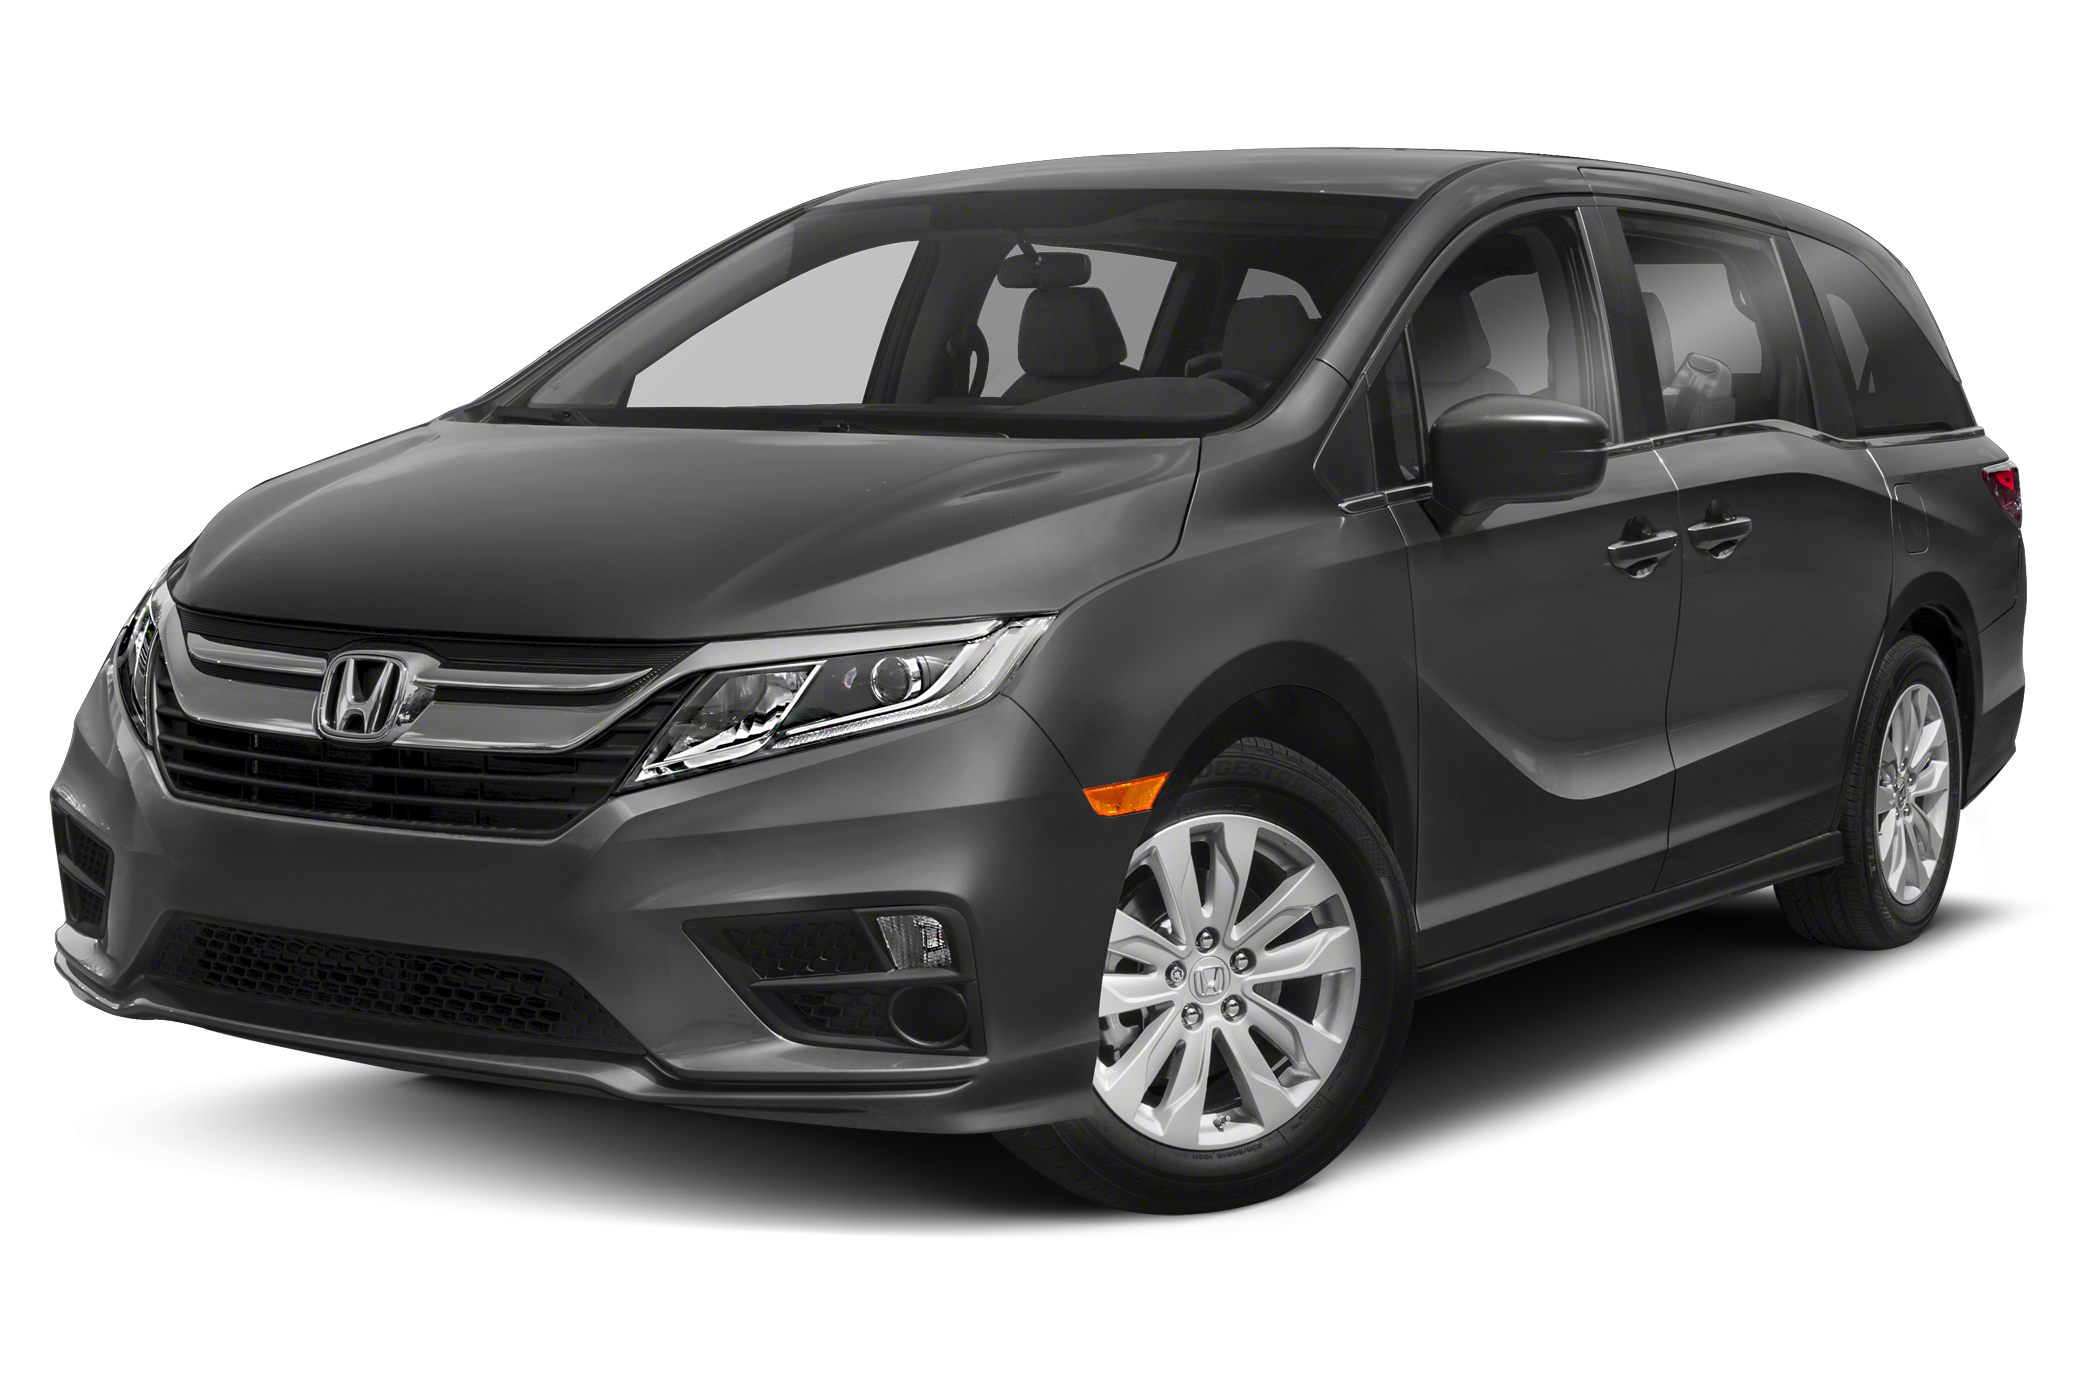 2018 honda odyssey deals prices incentives leases for Honda odyssey lease price